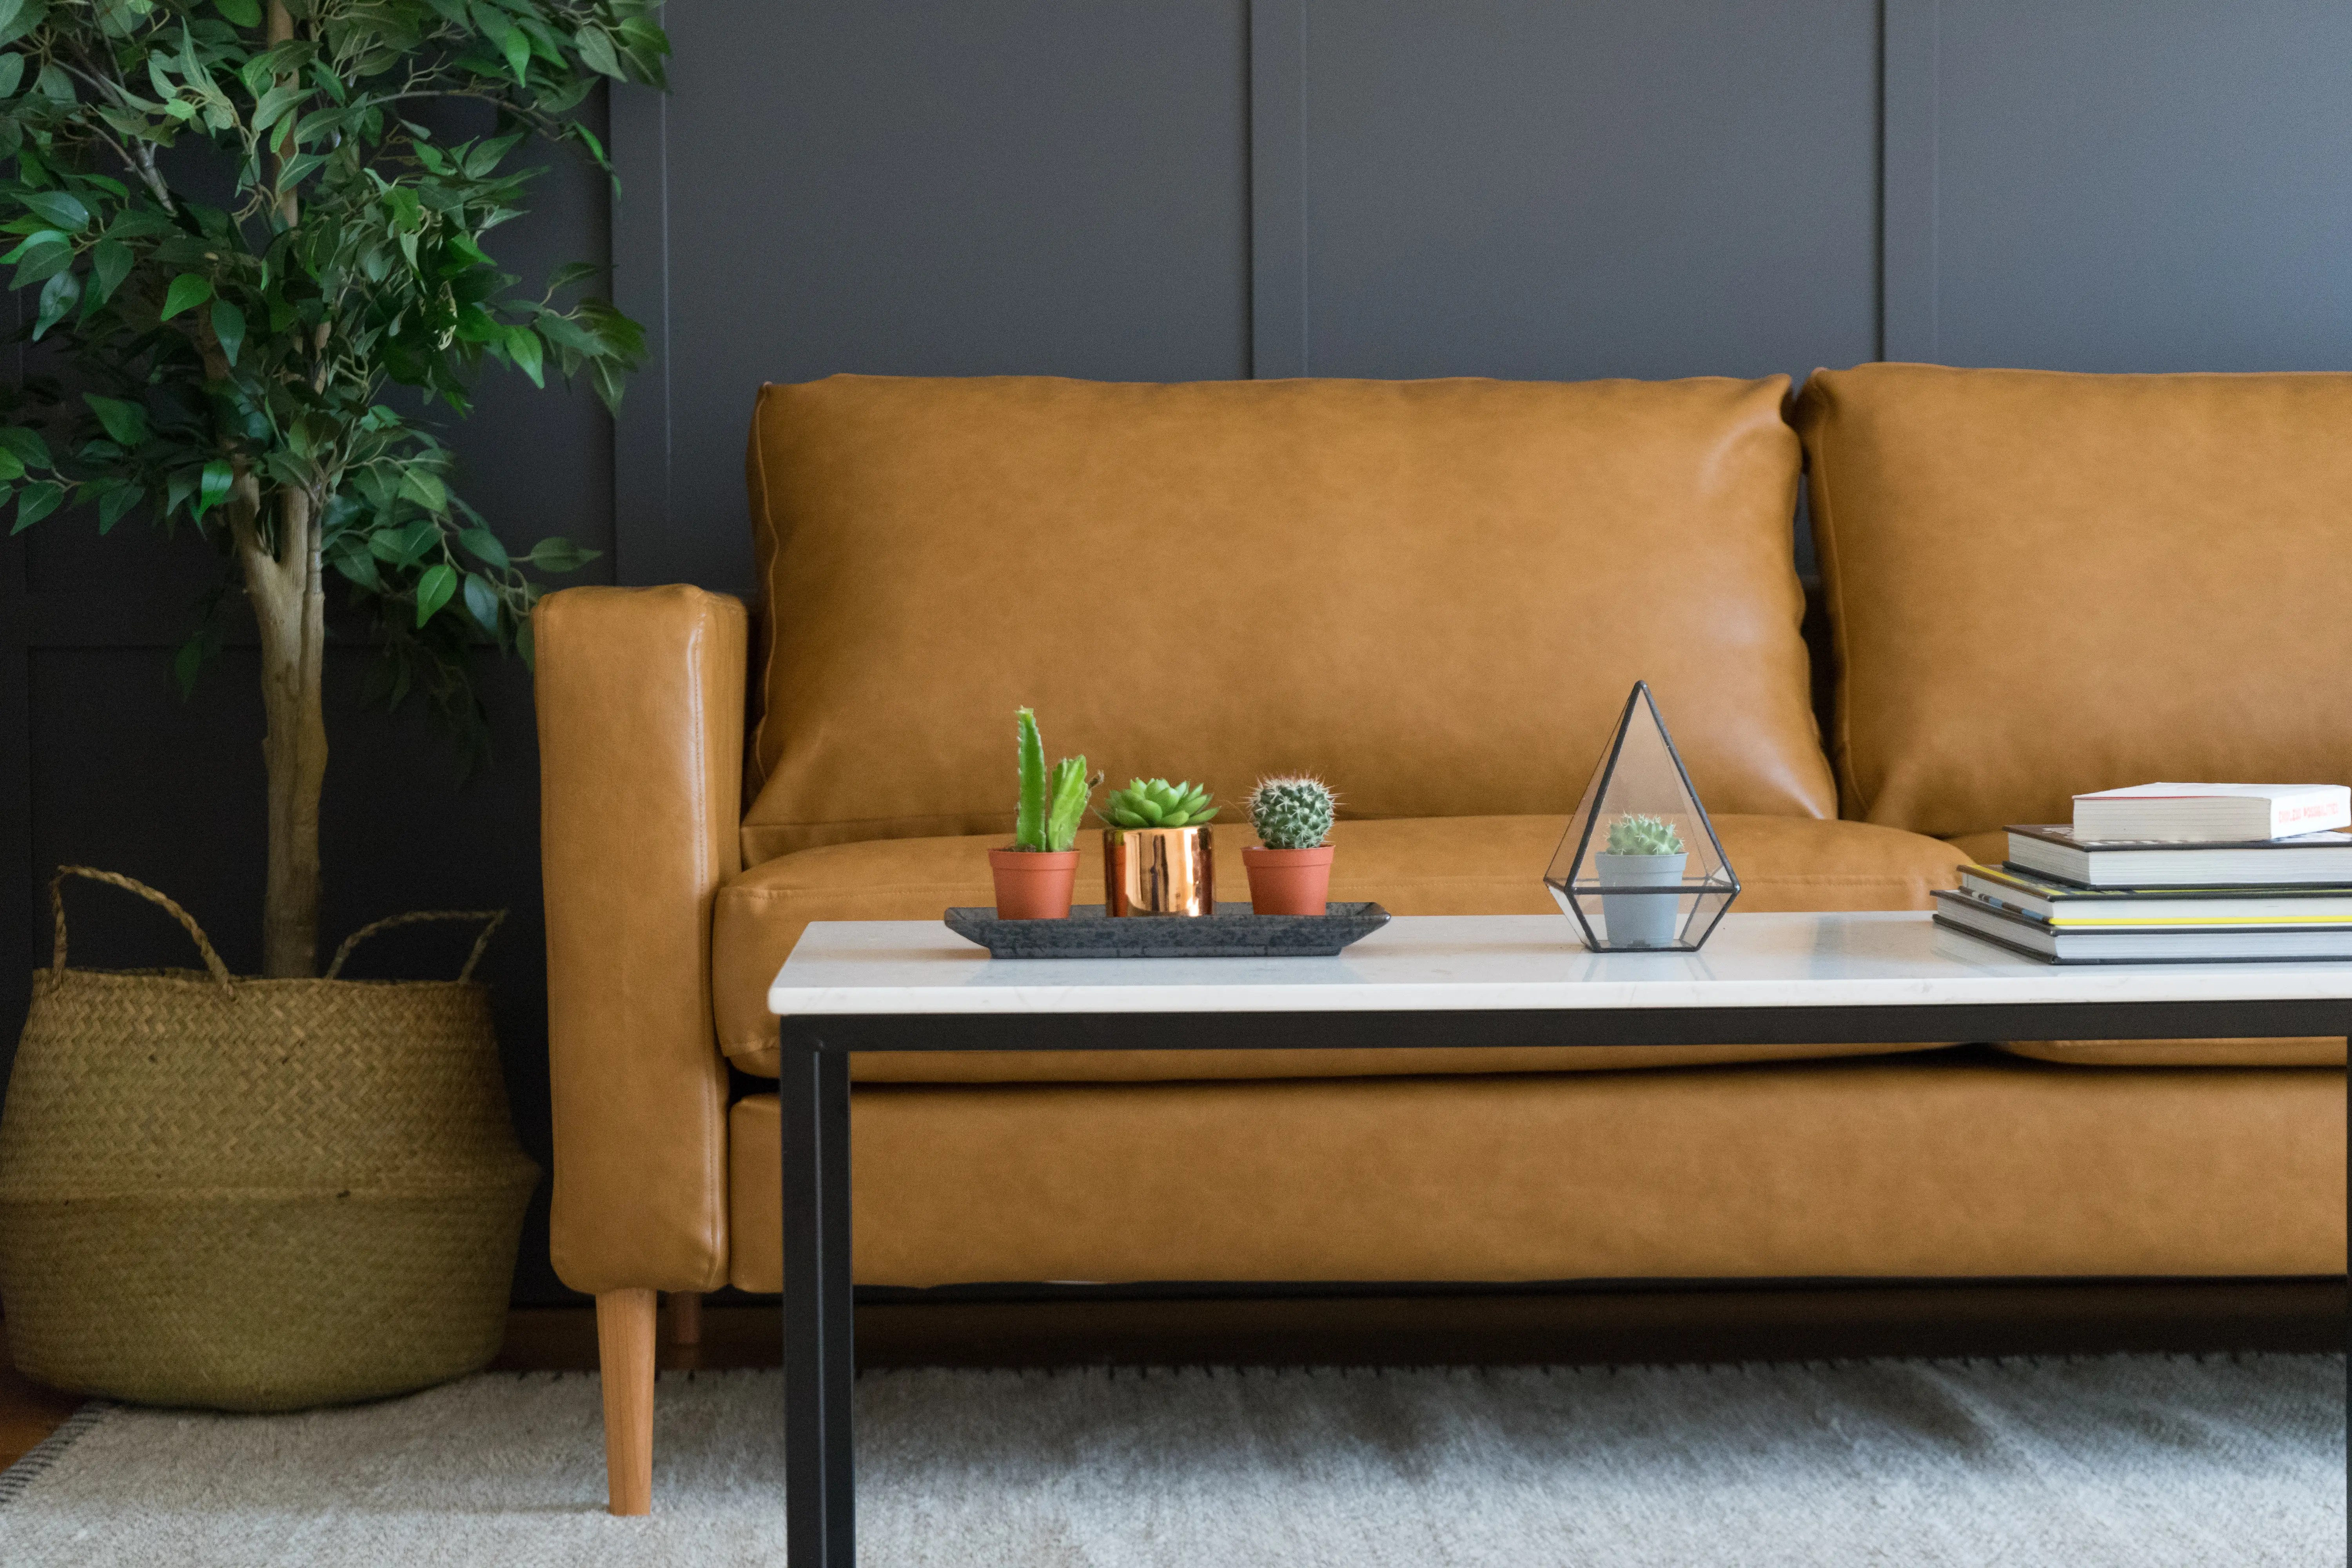 best couch cover for leather sofa karlstad corner with chaise where to get slipcovers places buy covers by comfort works